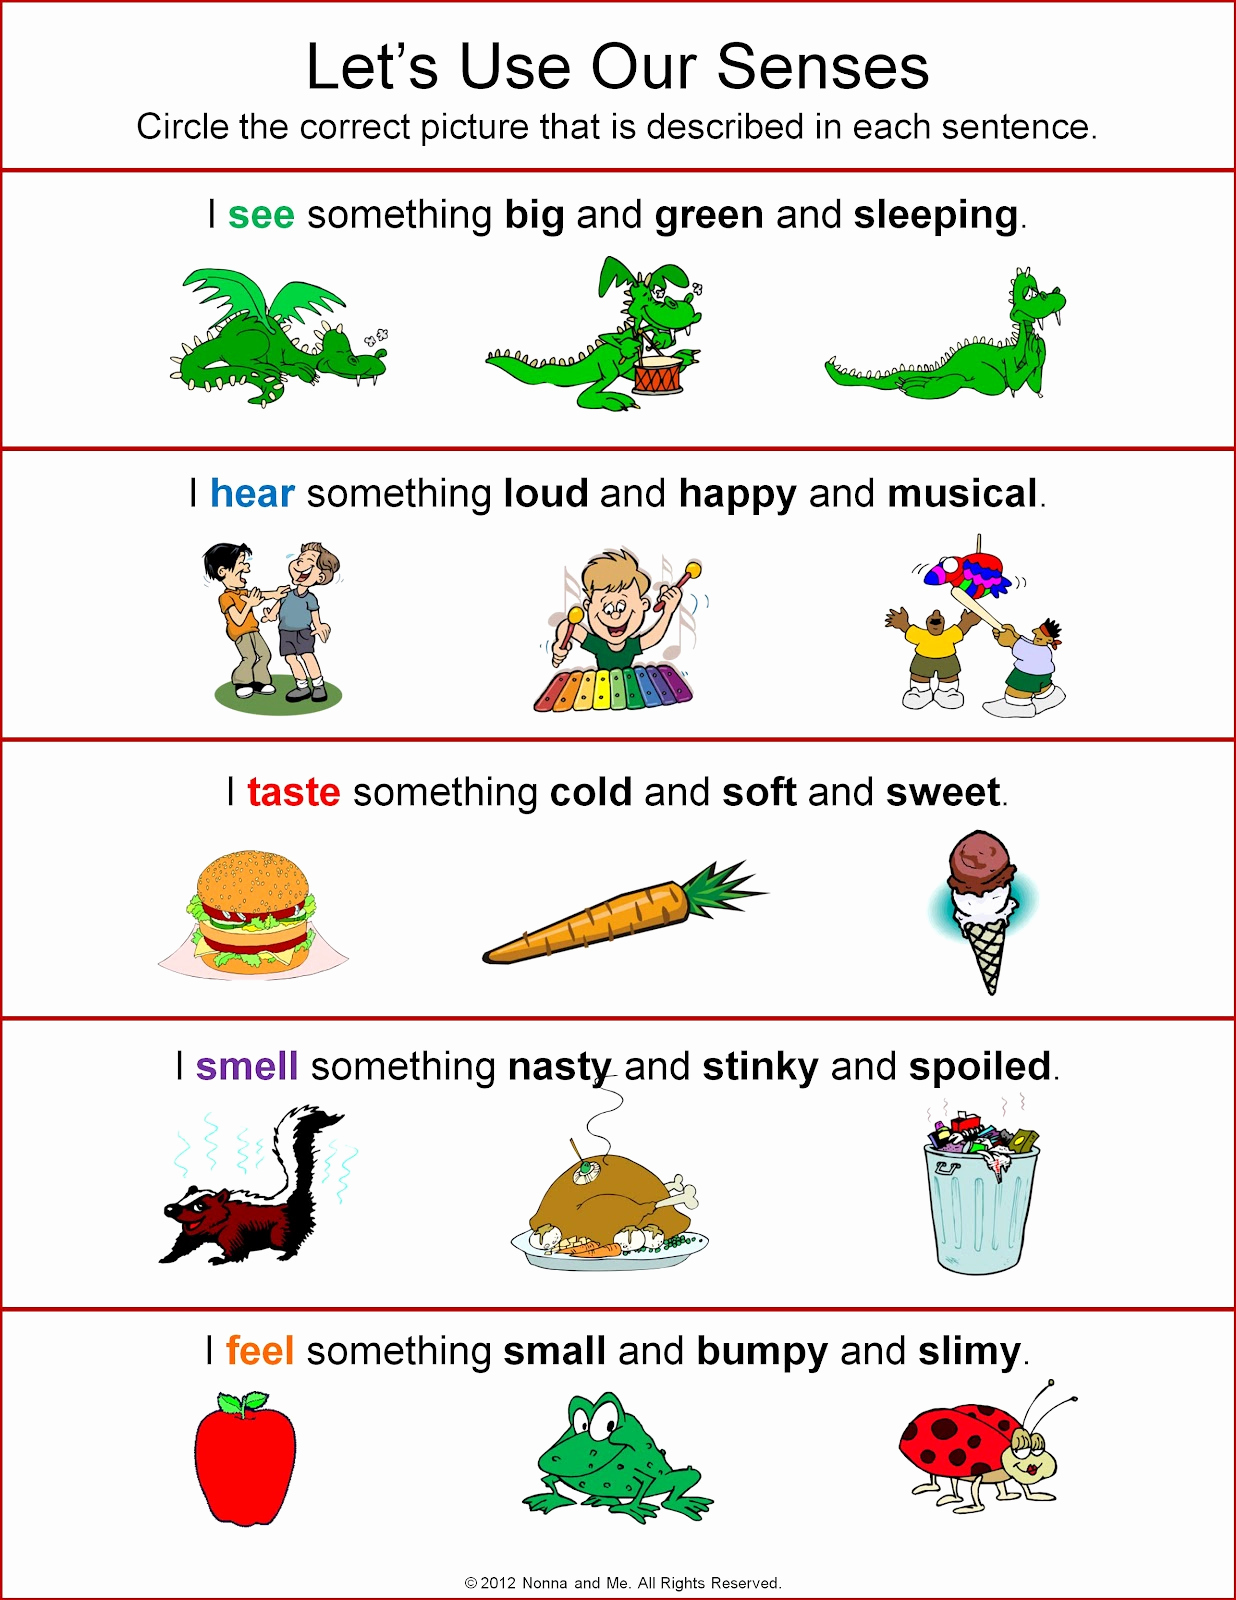 5 Senses Worksheets for Kindergarten Elegant Nonna and Me Let S Use Our Senses